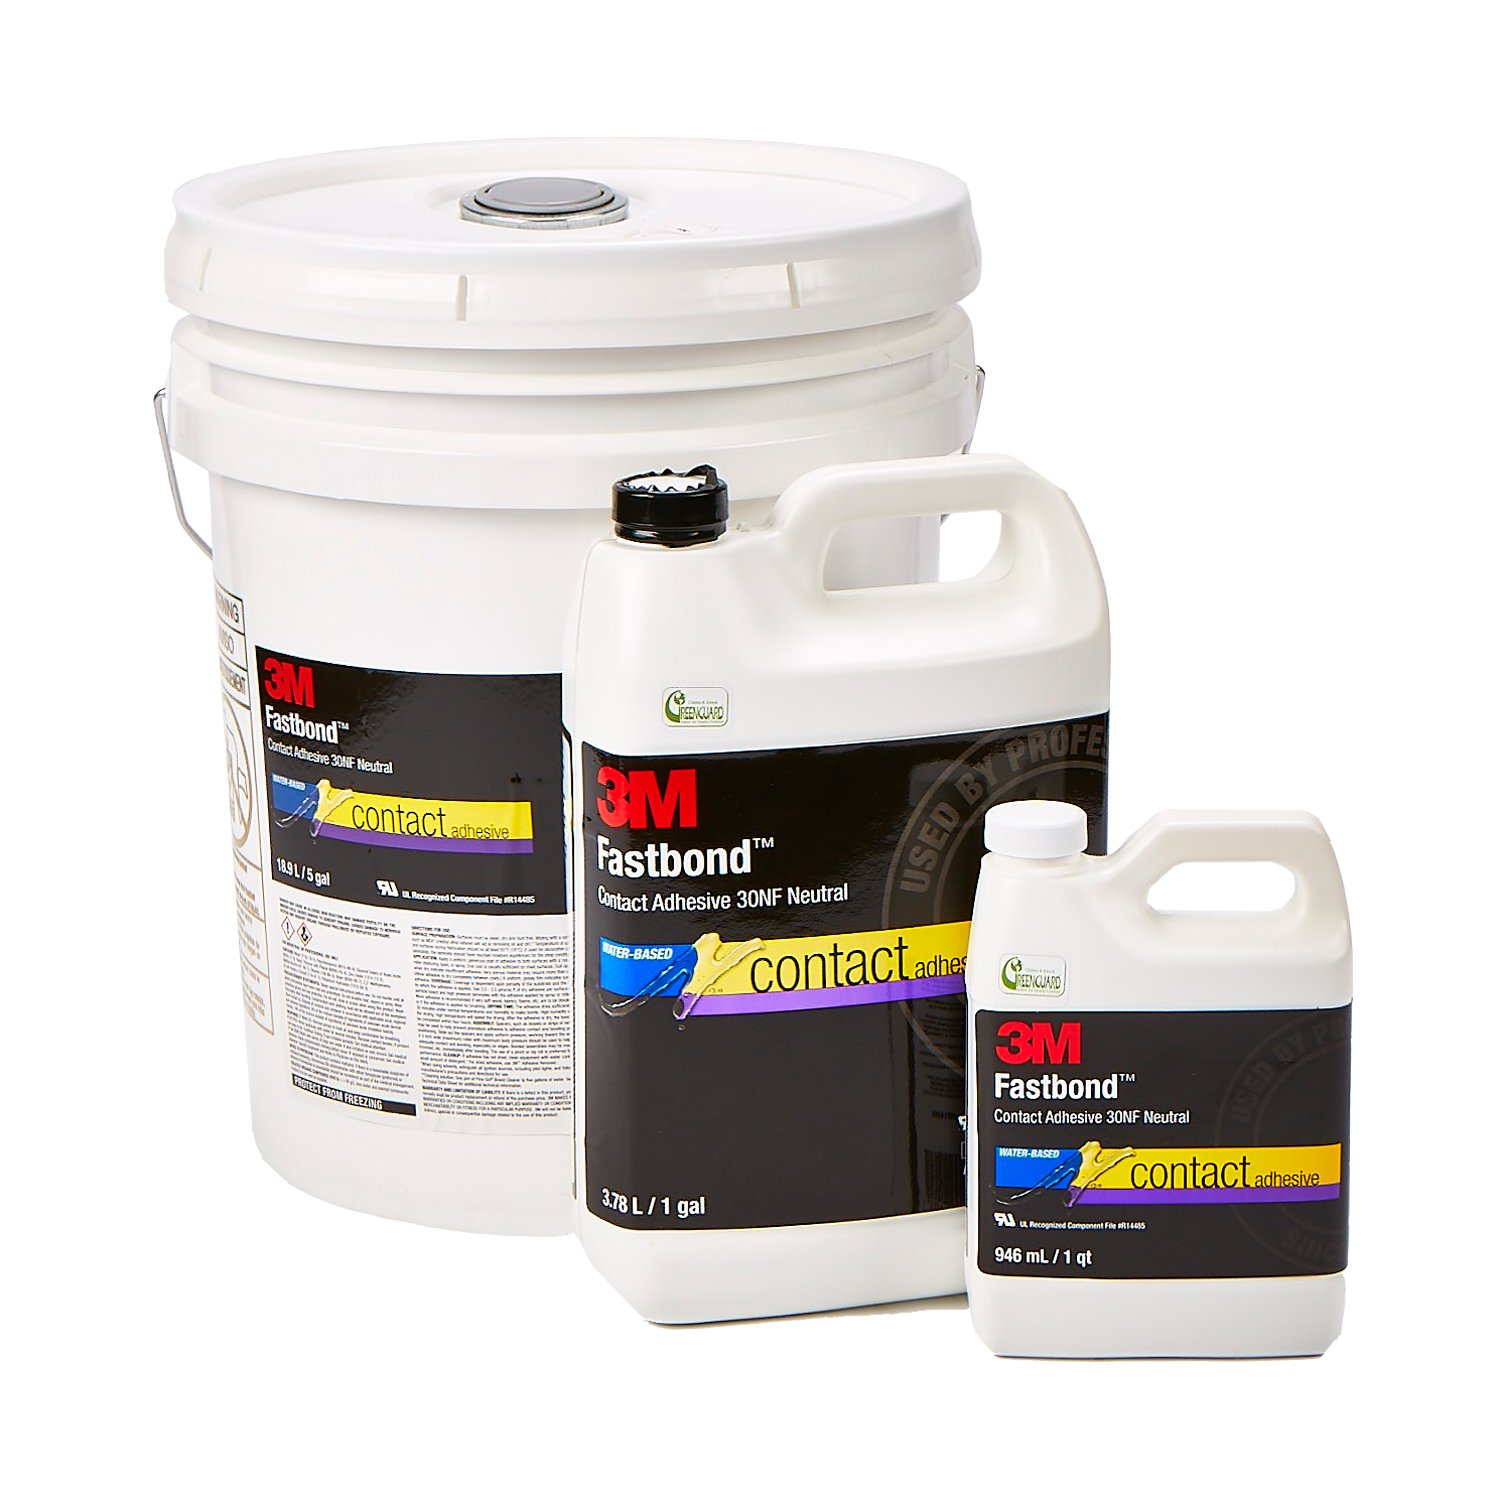 Fastbond 30 Contact Cement in 1 quart, 1 gallon or 5 gallon sizes